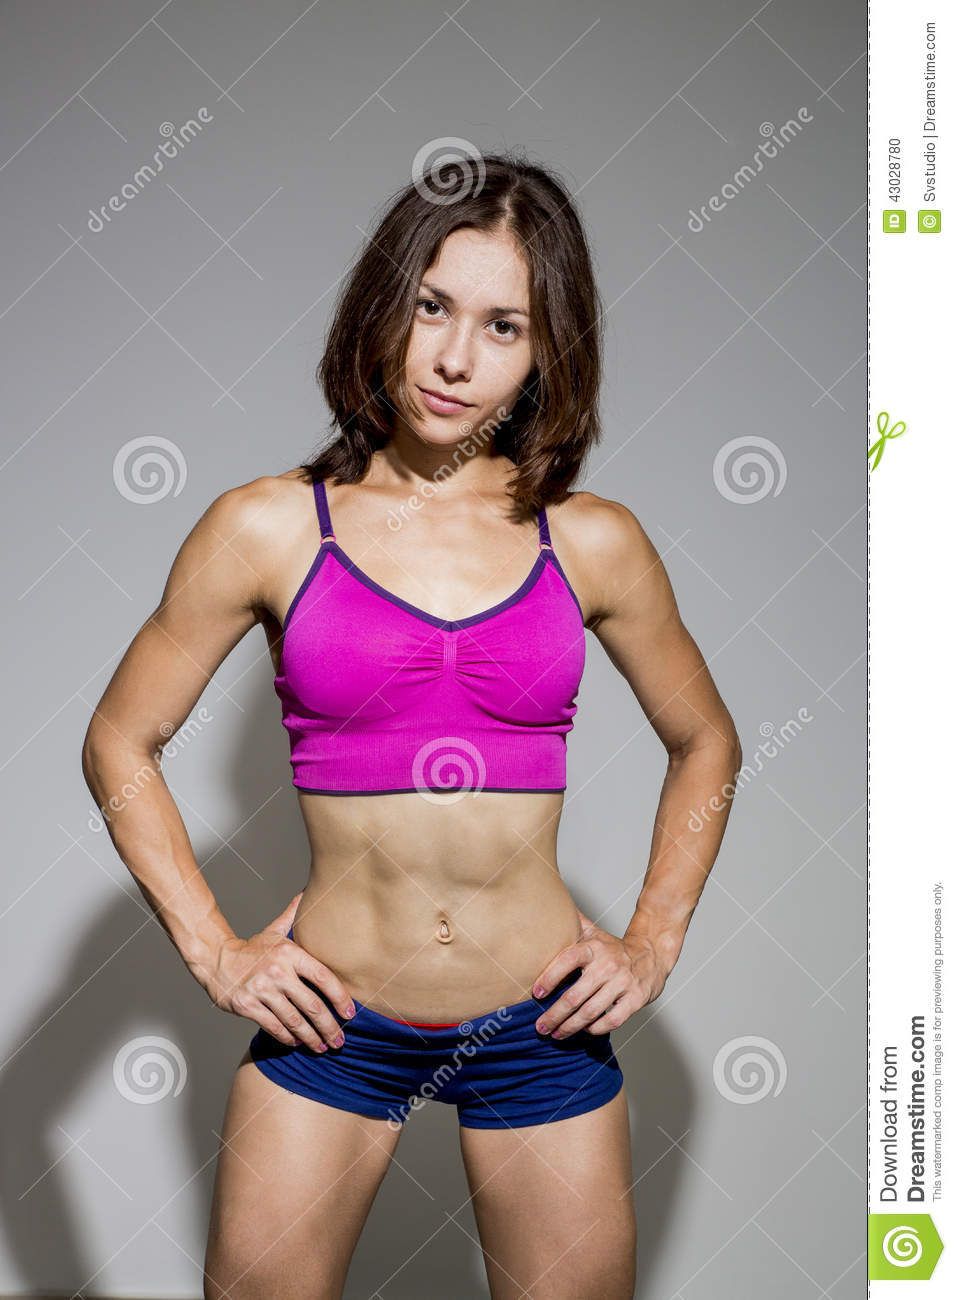 fitness-sport-training-women-sport-clothing-woman-gray-background